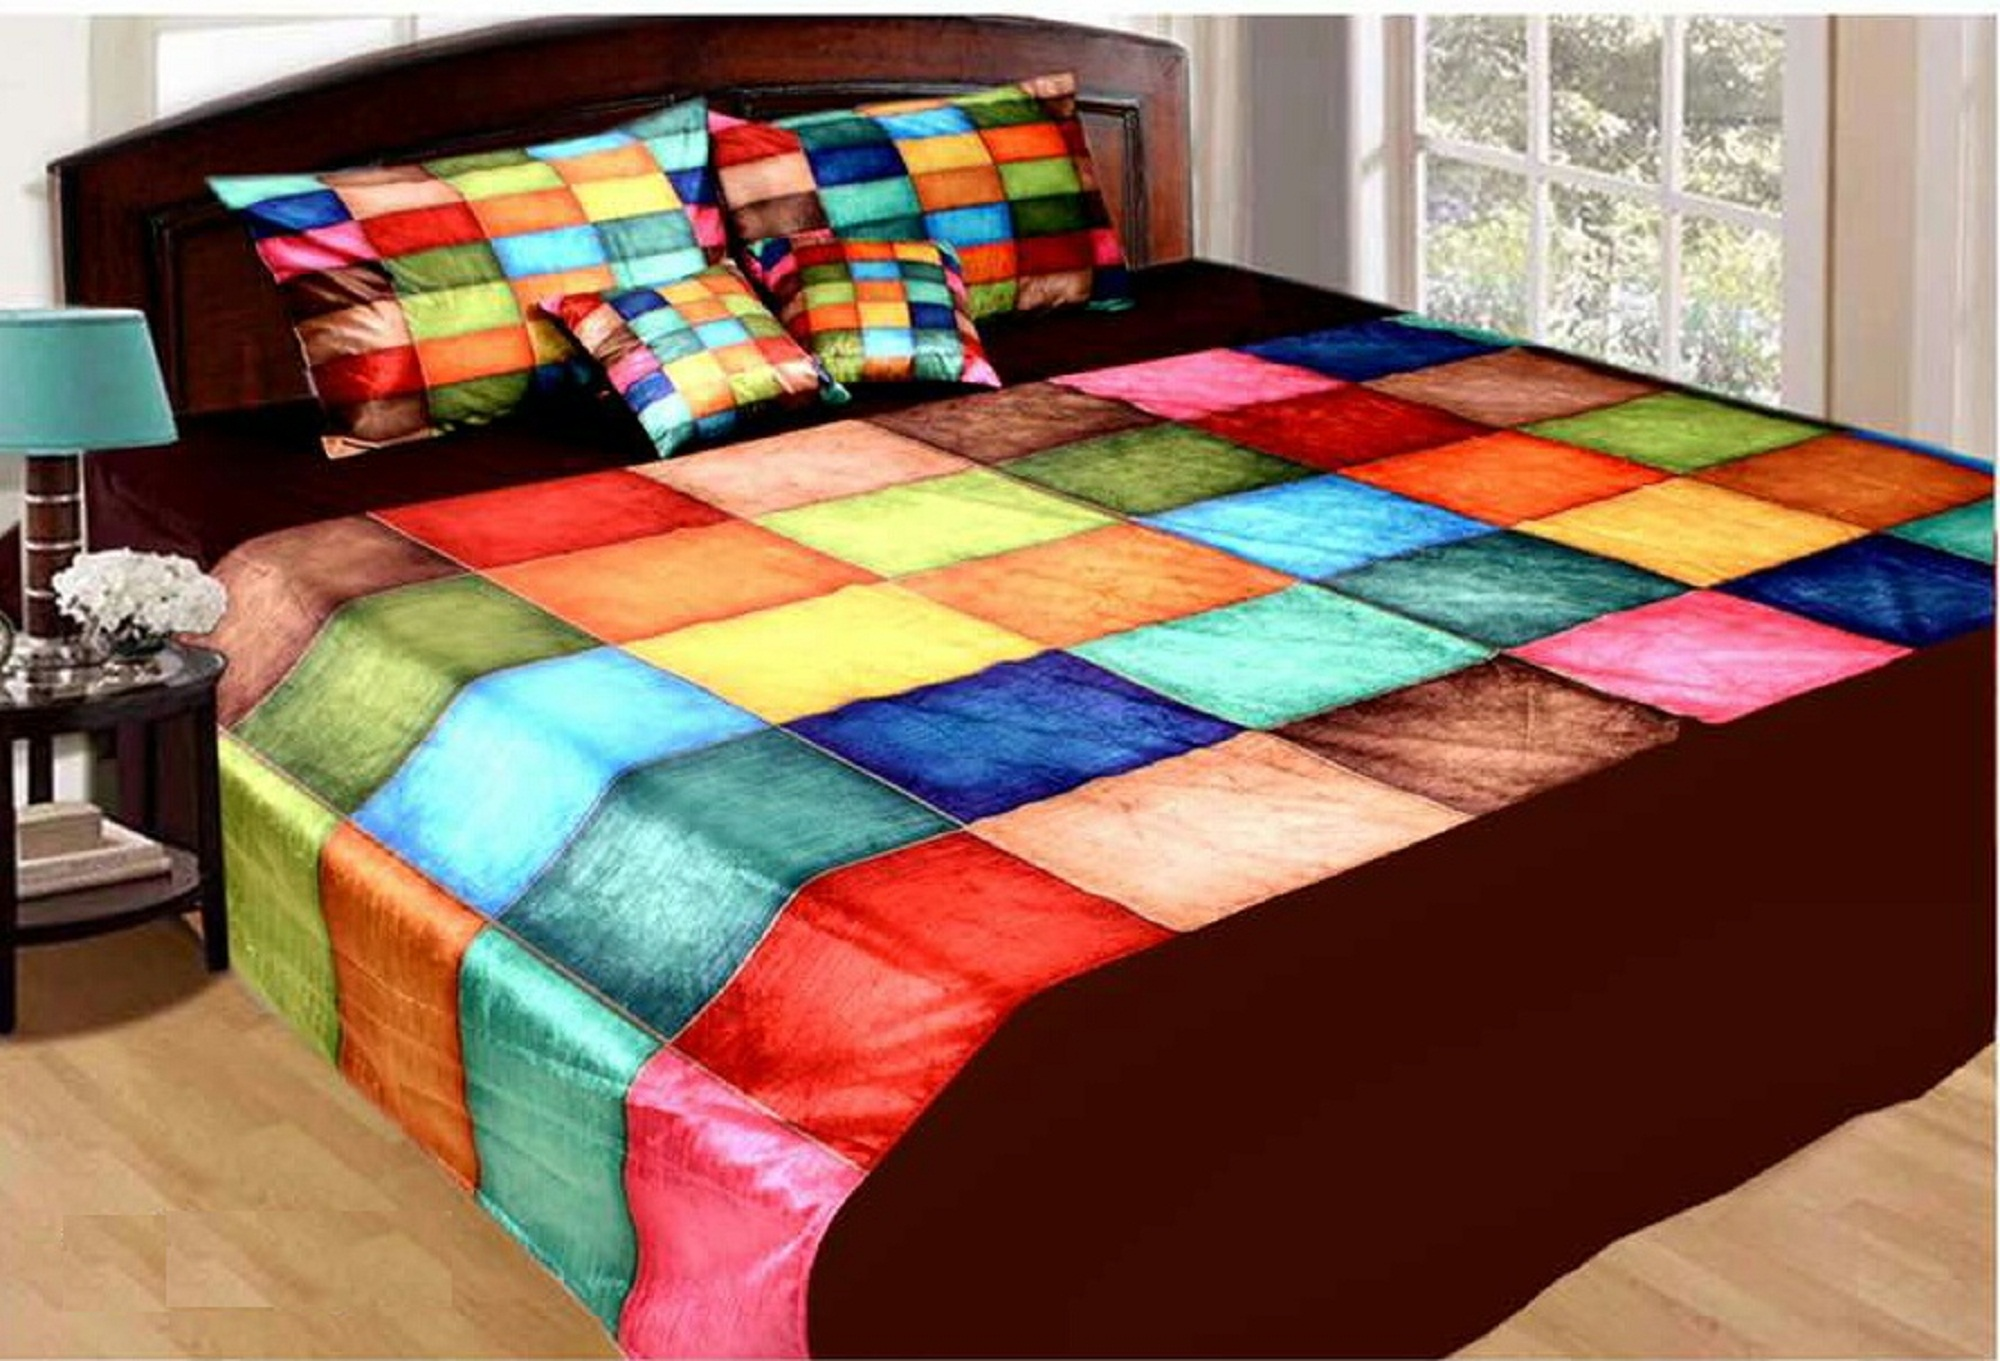 https://img1a.flixcart.com/images-jixgfww0/2018/5/28/bedsheet/KING-SIZE-BEDSHEET-MLTCR/IMAF6MJYMSQGTRYW.jpg